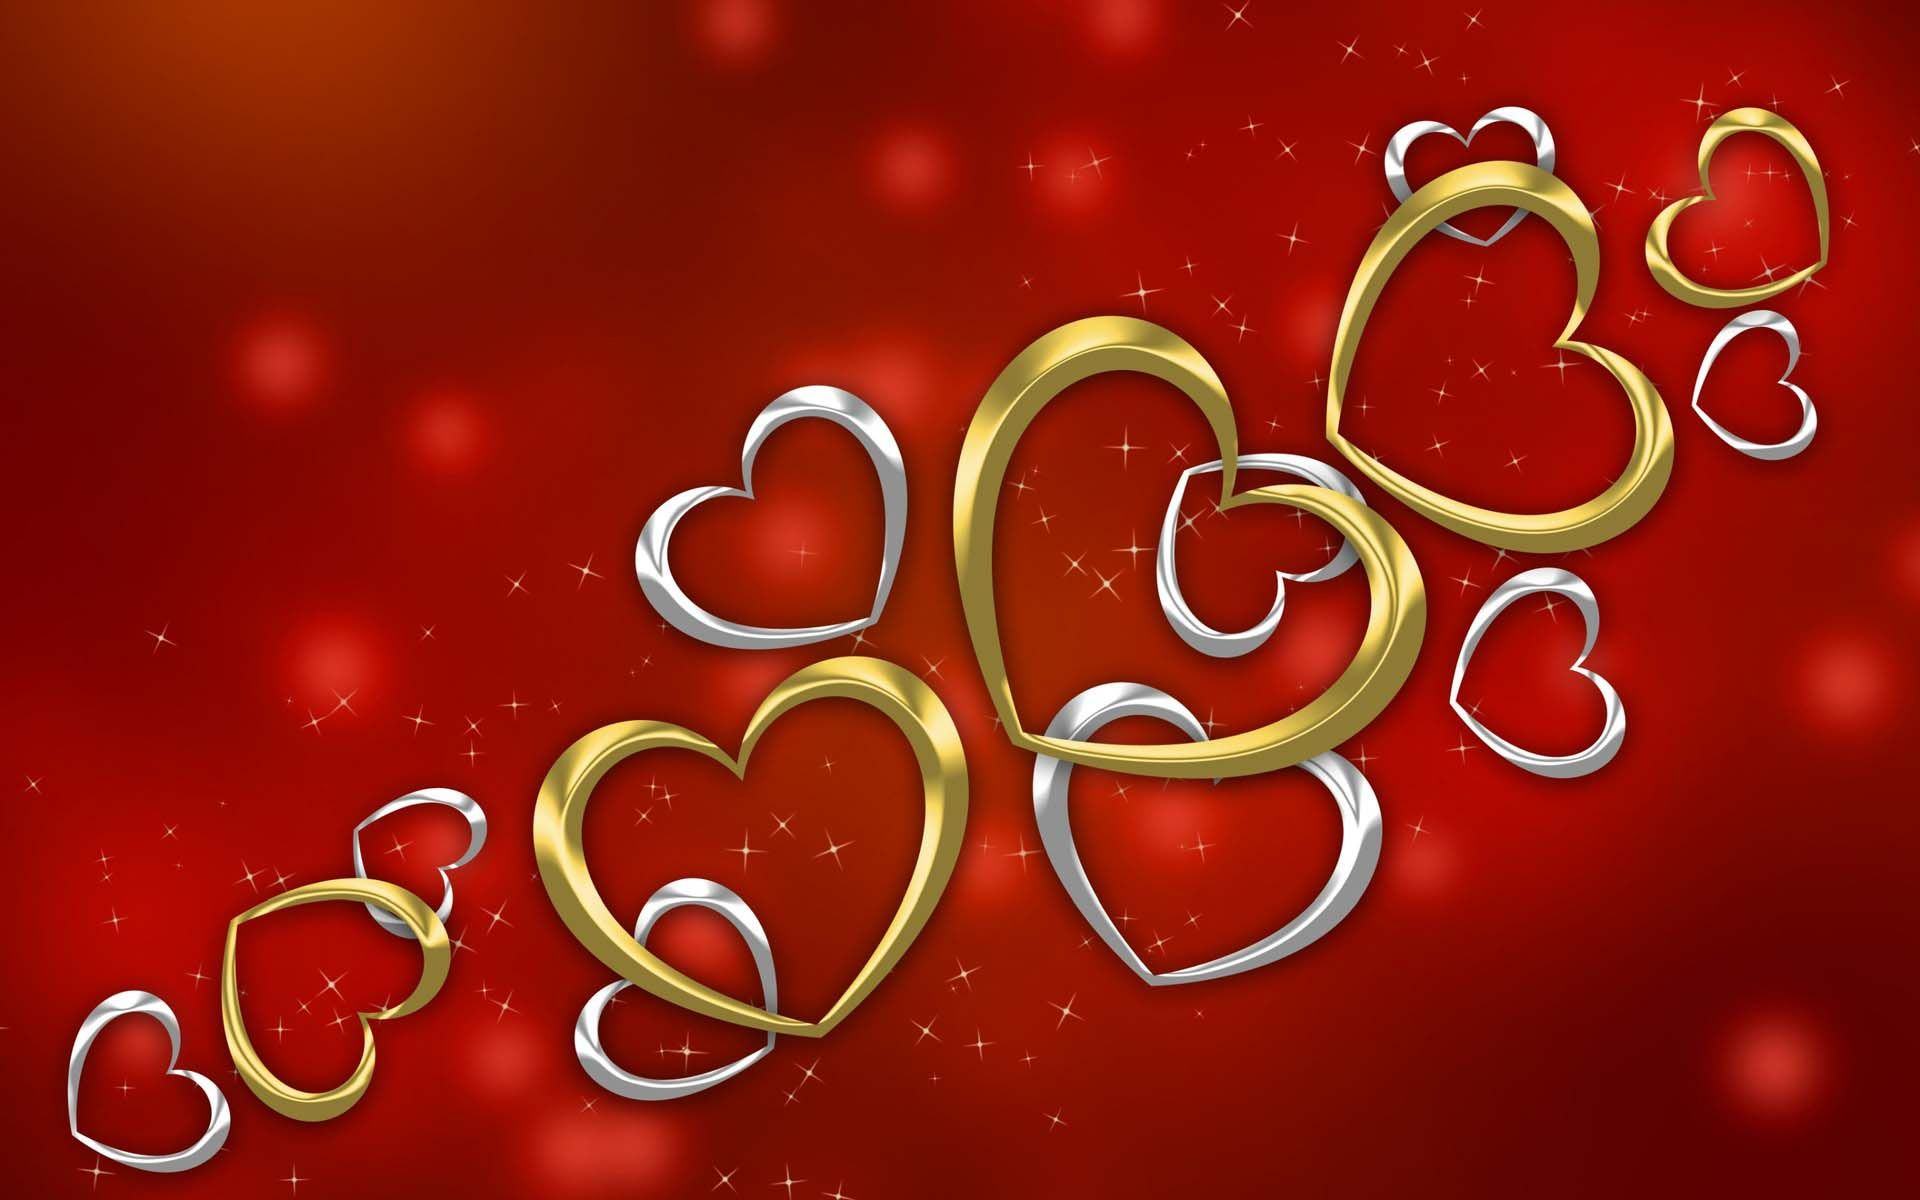 Love Gold And Silver Hearts Wallpaper 1920 1200 9176 Cool Pc Silver Heart Wallpaper Heart Wallpaper Silver Heart